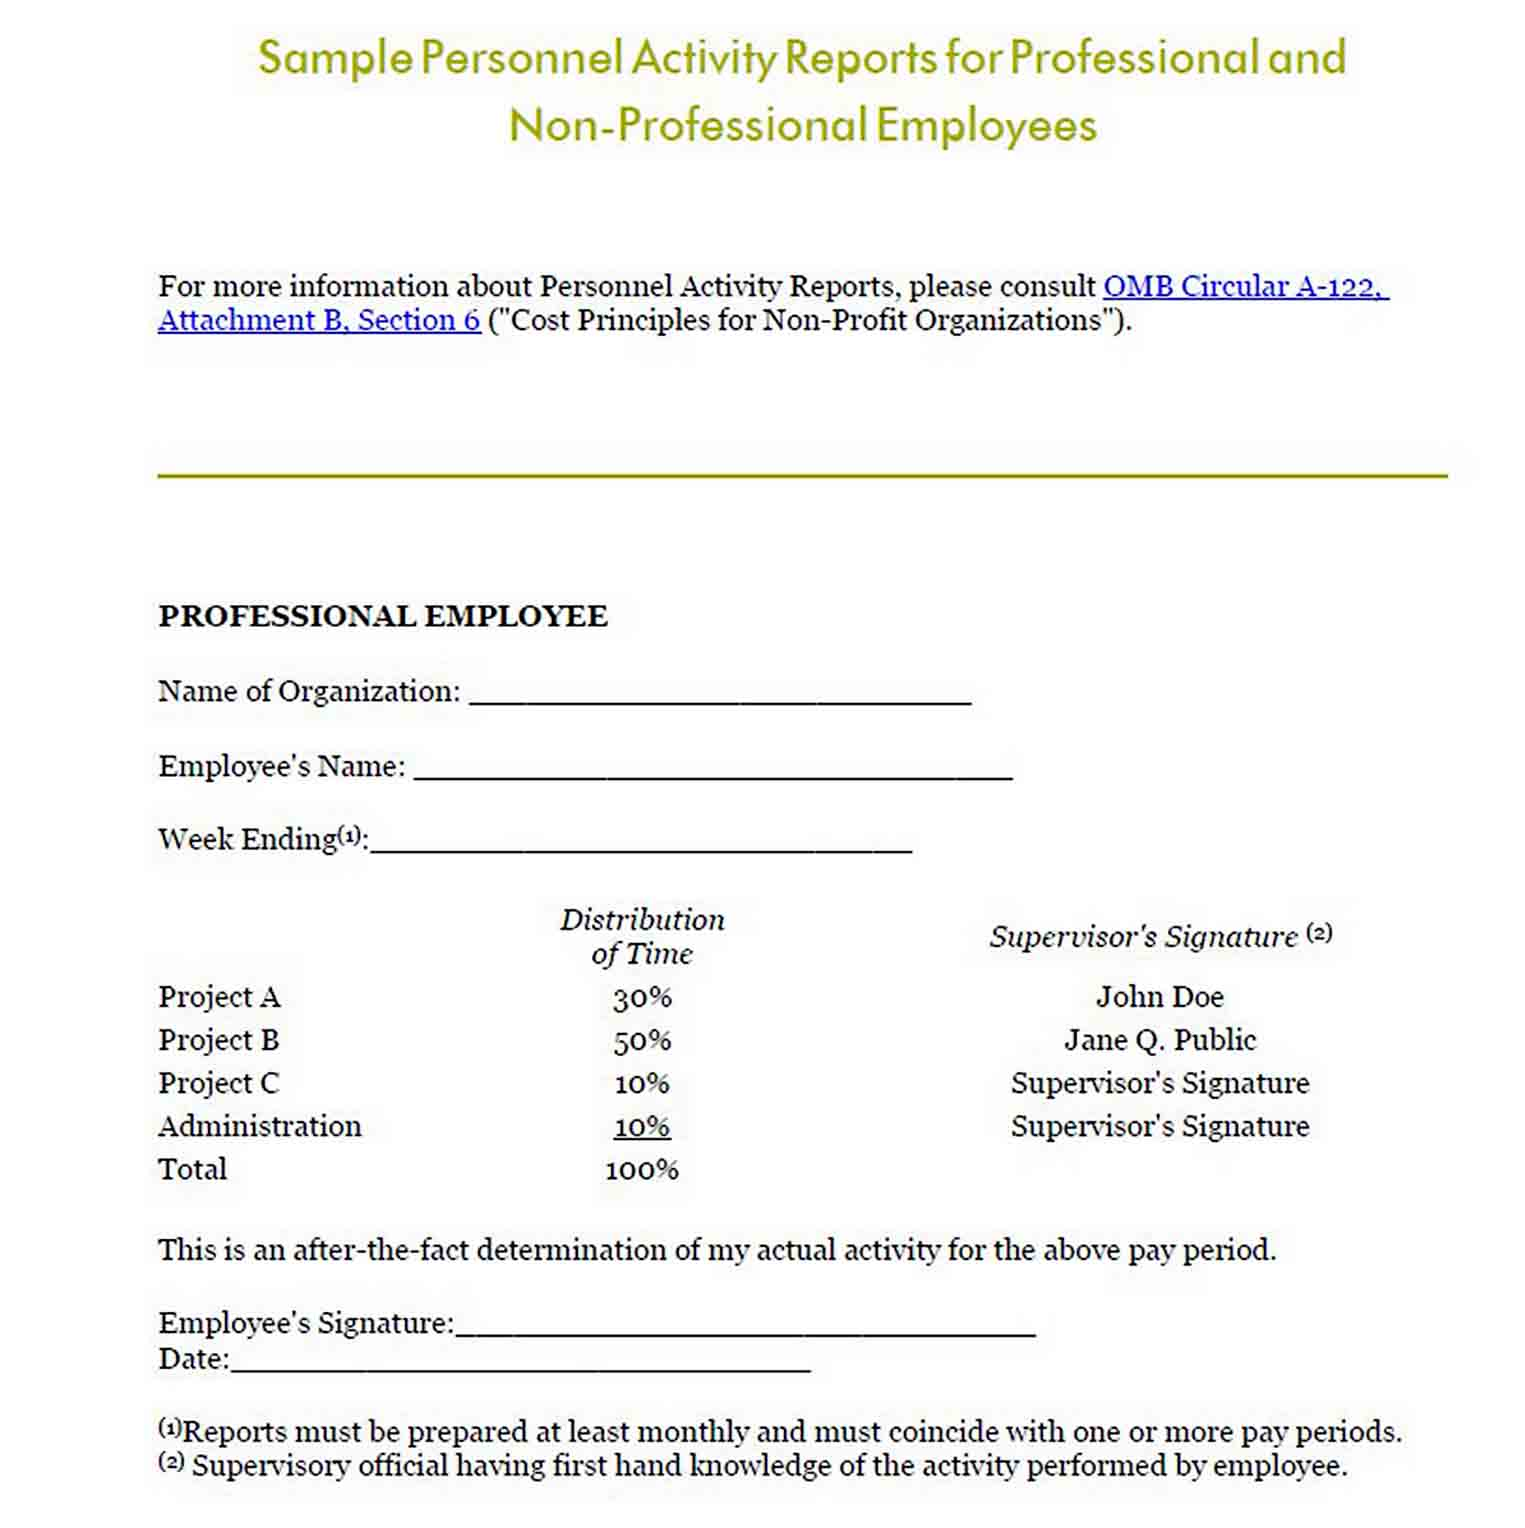 Personnel Activity Report sample